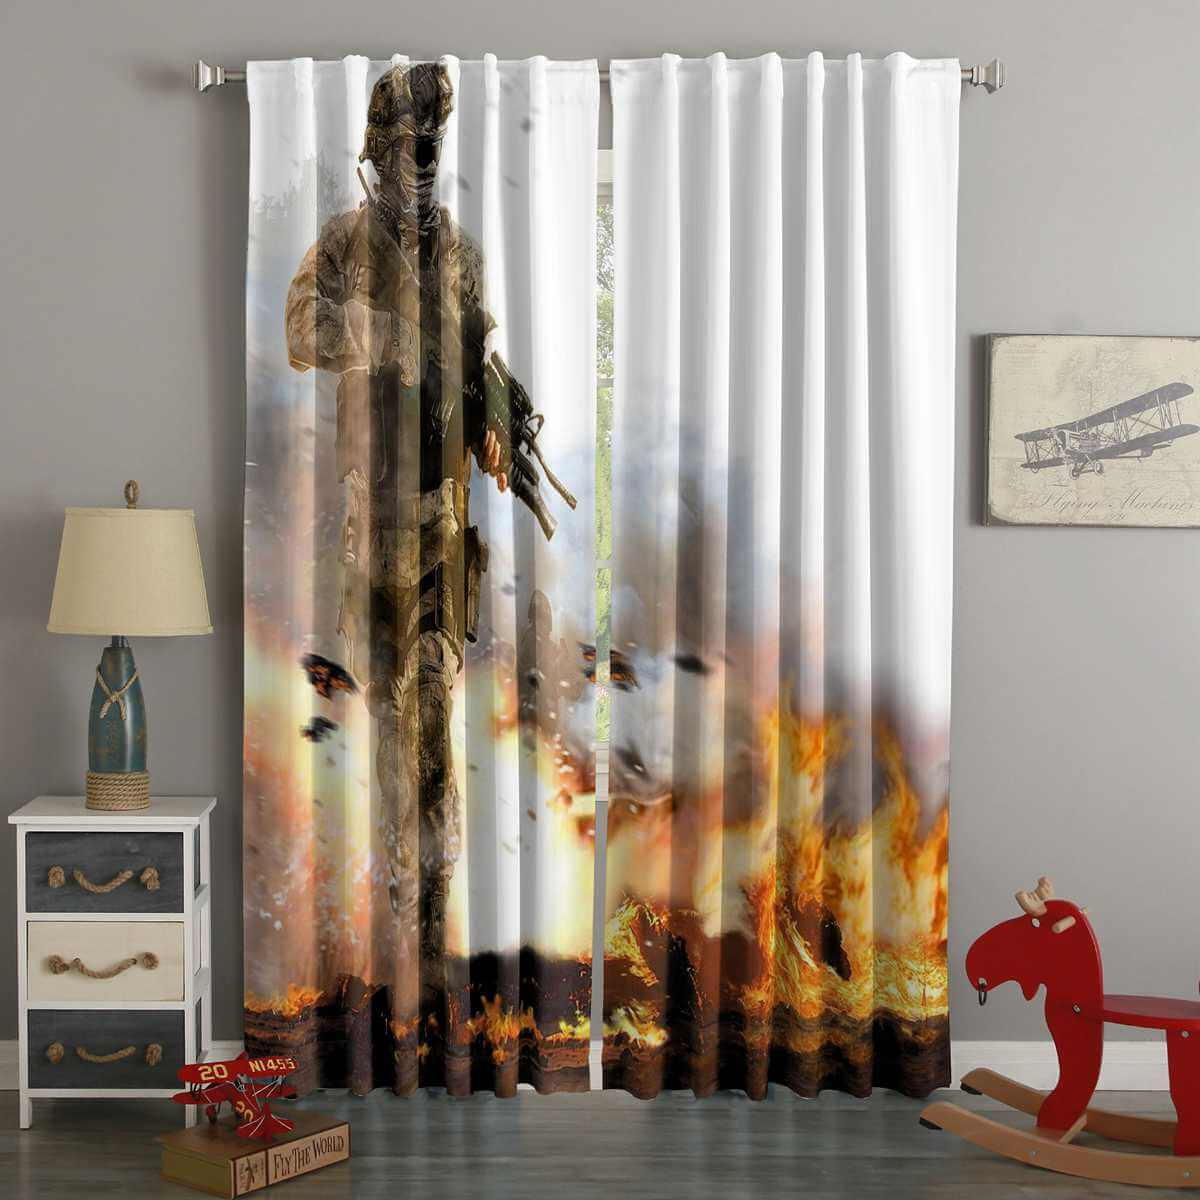 3D Printed Call of Duty Modern Warfare 2 Style Custom Living Room Curtains